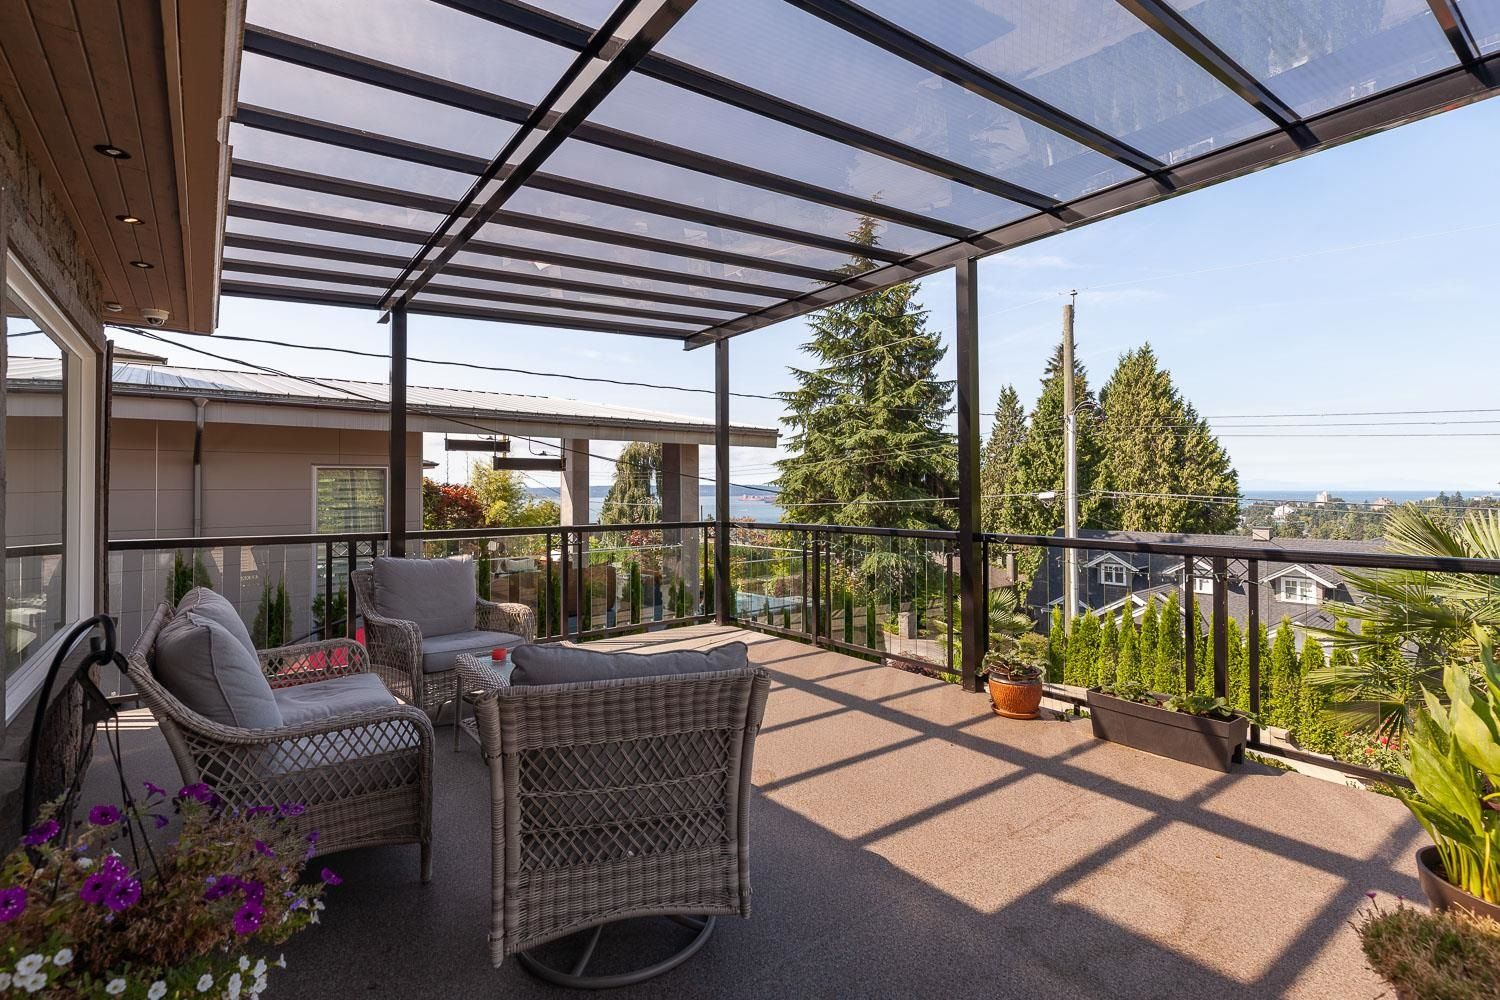 Main Photo: 960 LEYLAND Street in West Vancouver: Sentinel Hill House for sale : MLS®# R2622155